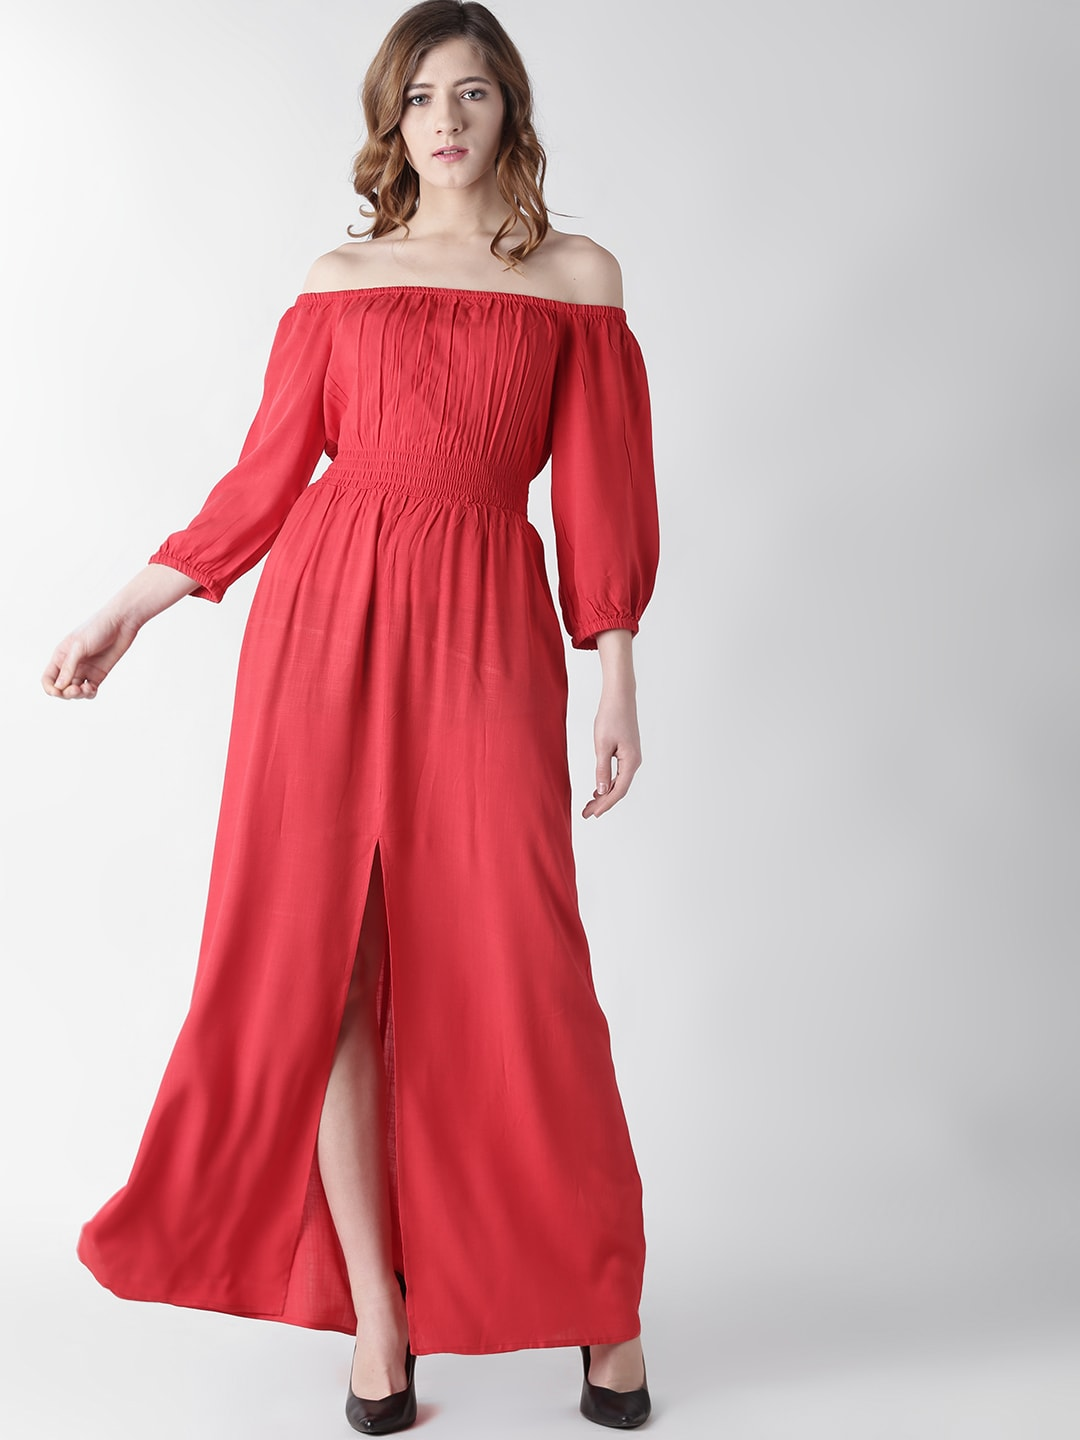 43fea82a4b1 Forever 21 Bridesmaid Dresses In Store - Gomes Weine AG